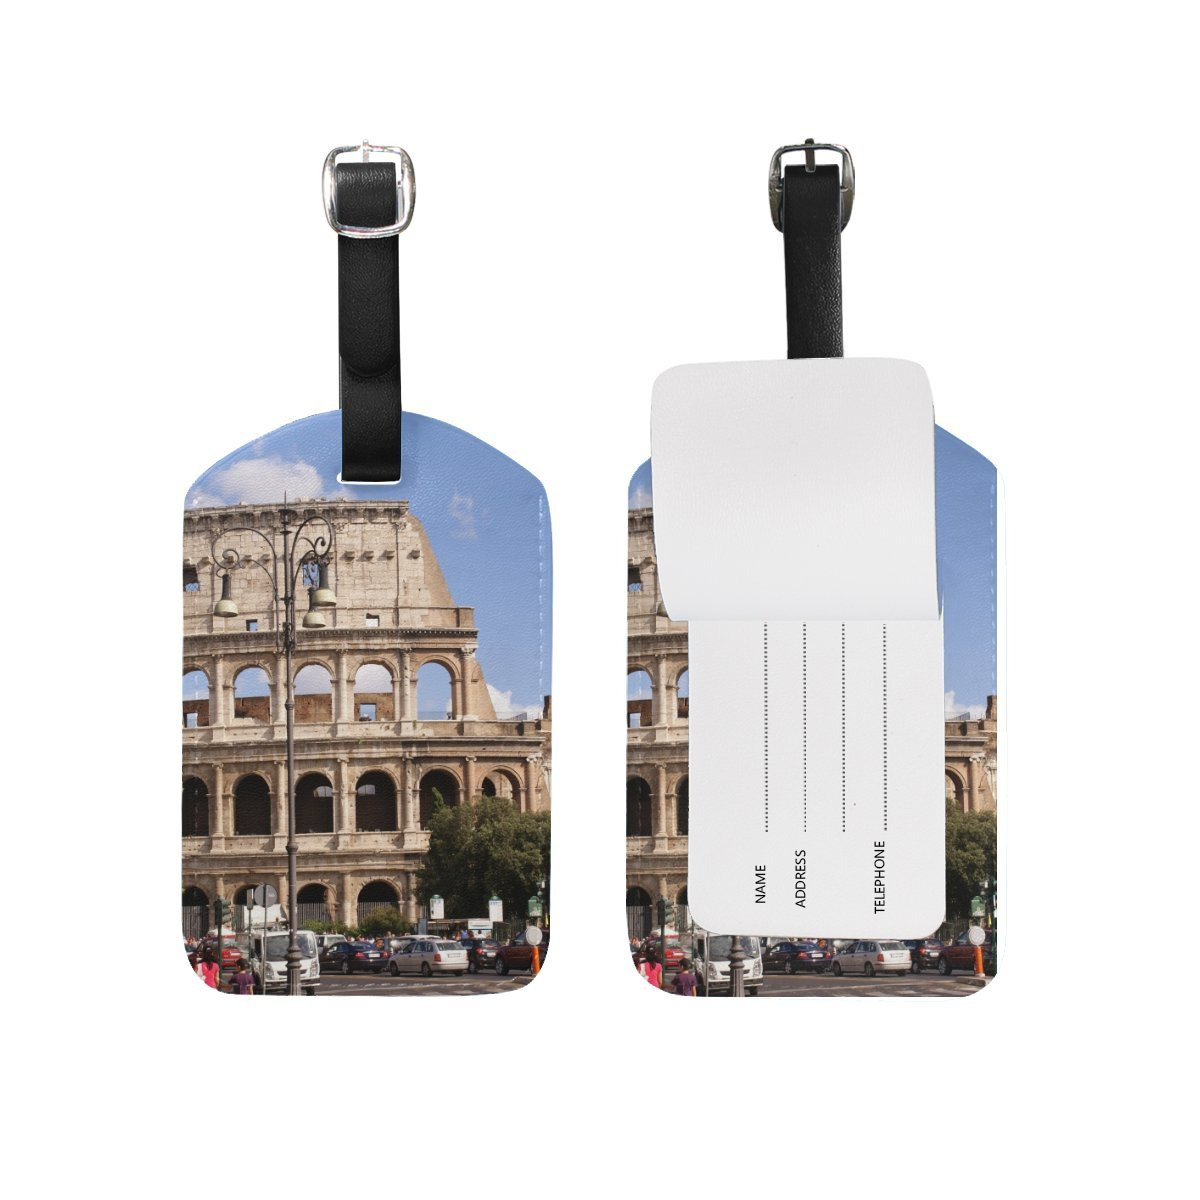 Rome Italy Colosseum City Travel Genuine Leather Luggage Tags Id Labels Holders(2 Pcs Set)